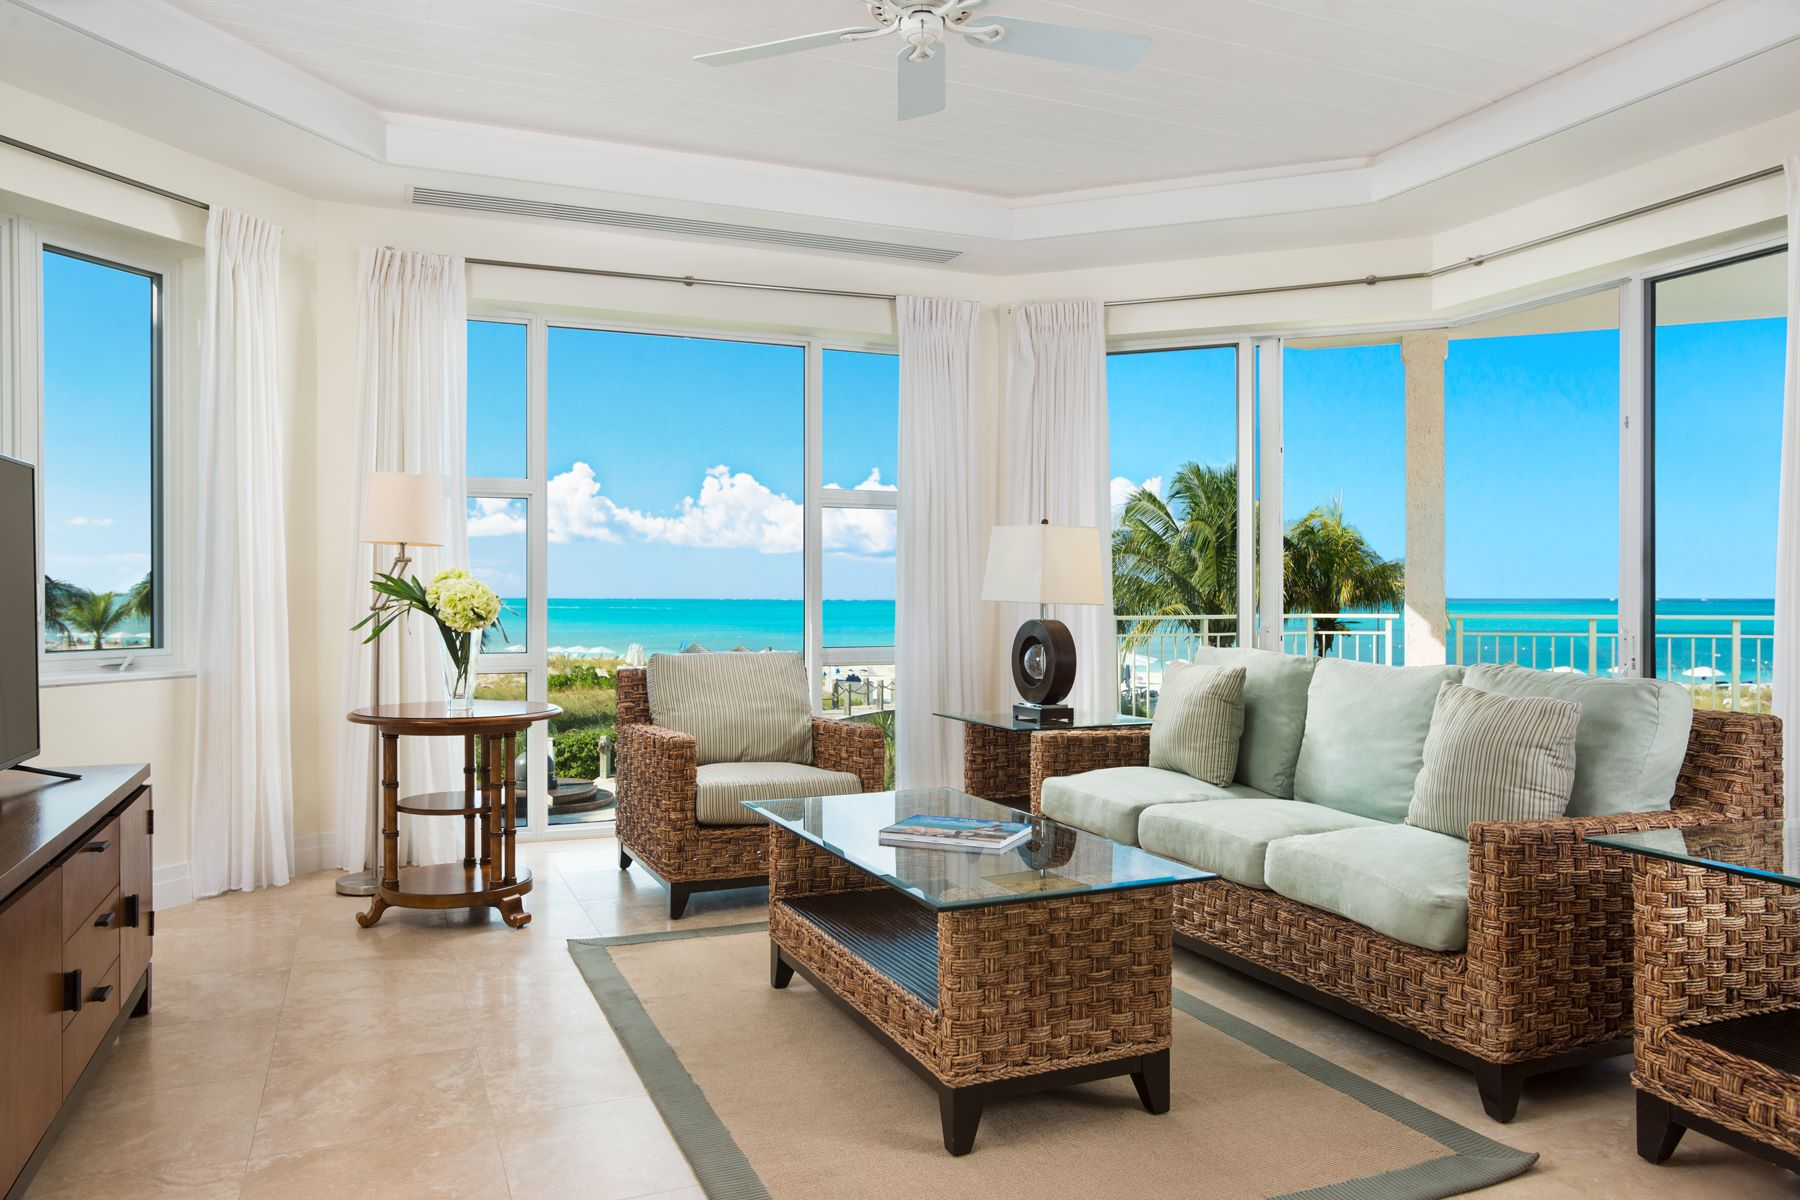 Additional photo for property listing at West Bay Club - Suite 207 West Bay Club, Grace Bay, Провиденсьялес Теркс И Кайкос